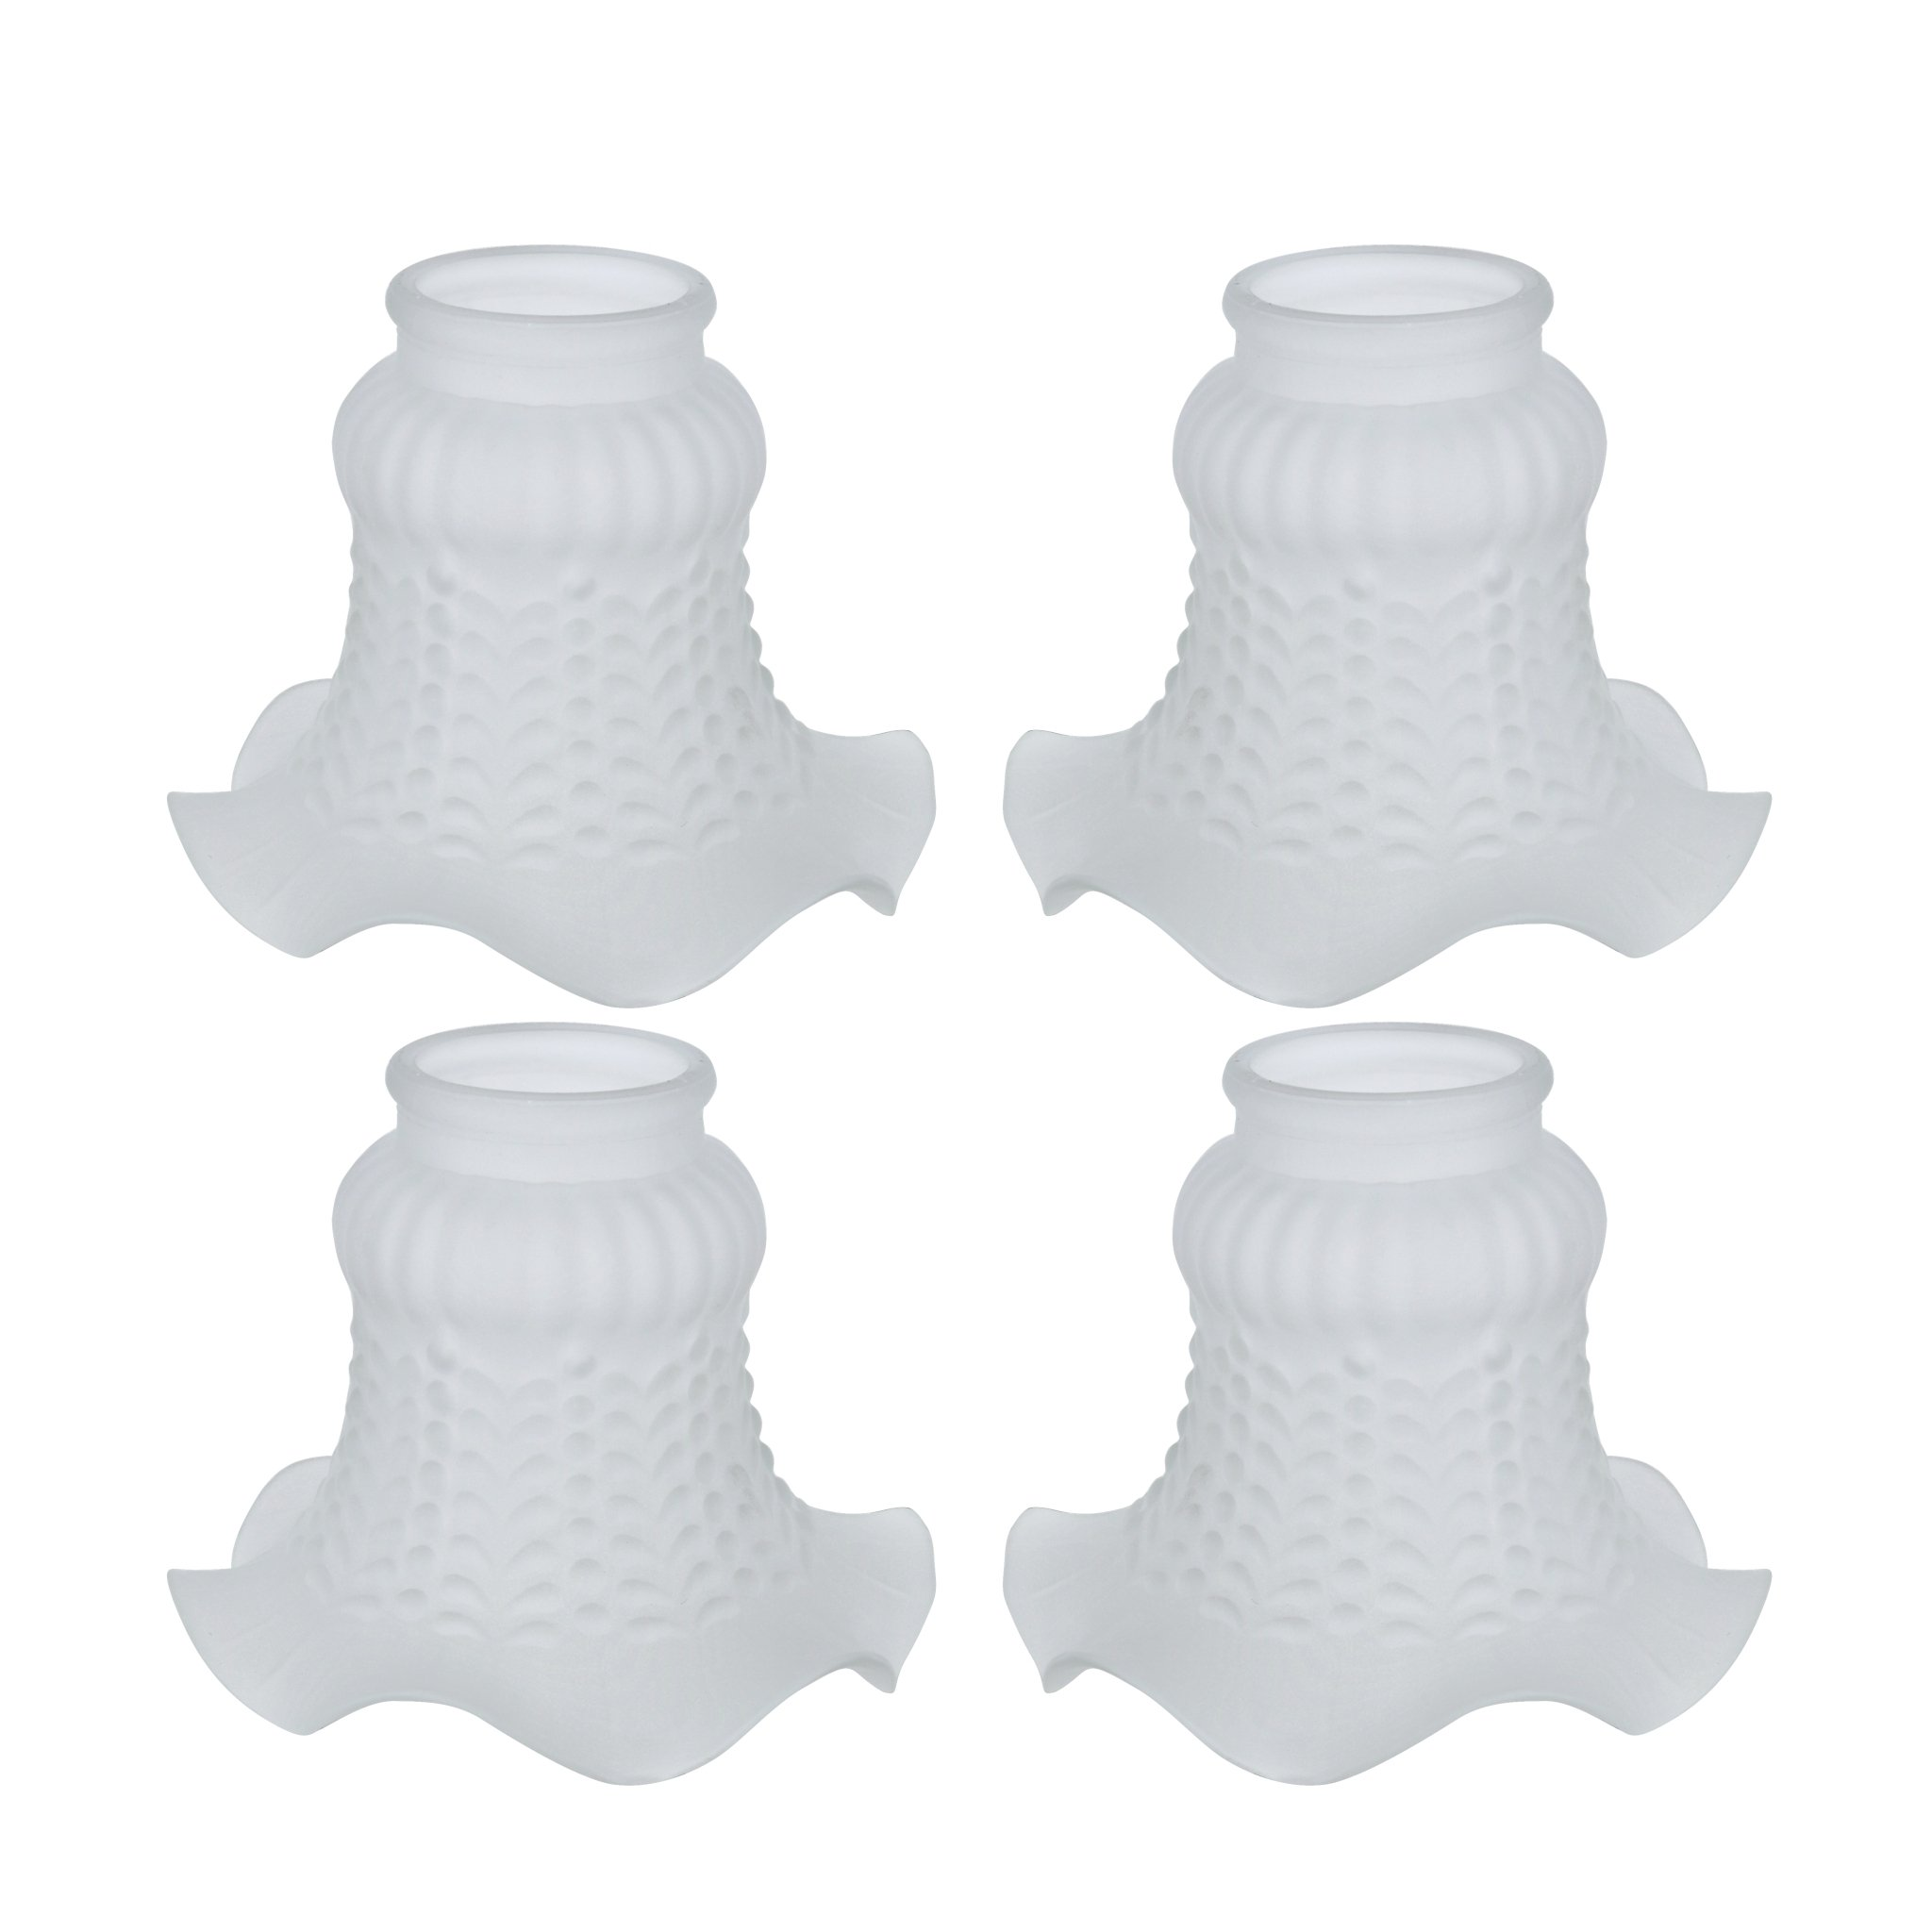 Aspen Creative 23021-4 Transitional Style Replacement Floral Shaped Frosted Glass Shade, 2'' Fitter Size, 4 1/8'' high x 4 3/4'' Diameter, 4 Pack